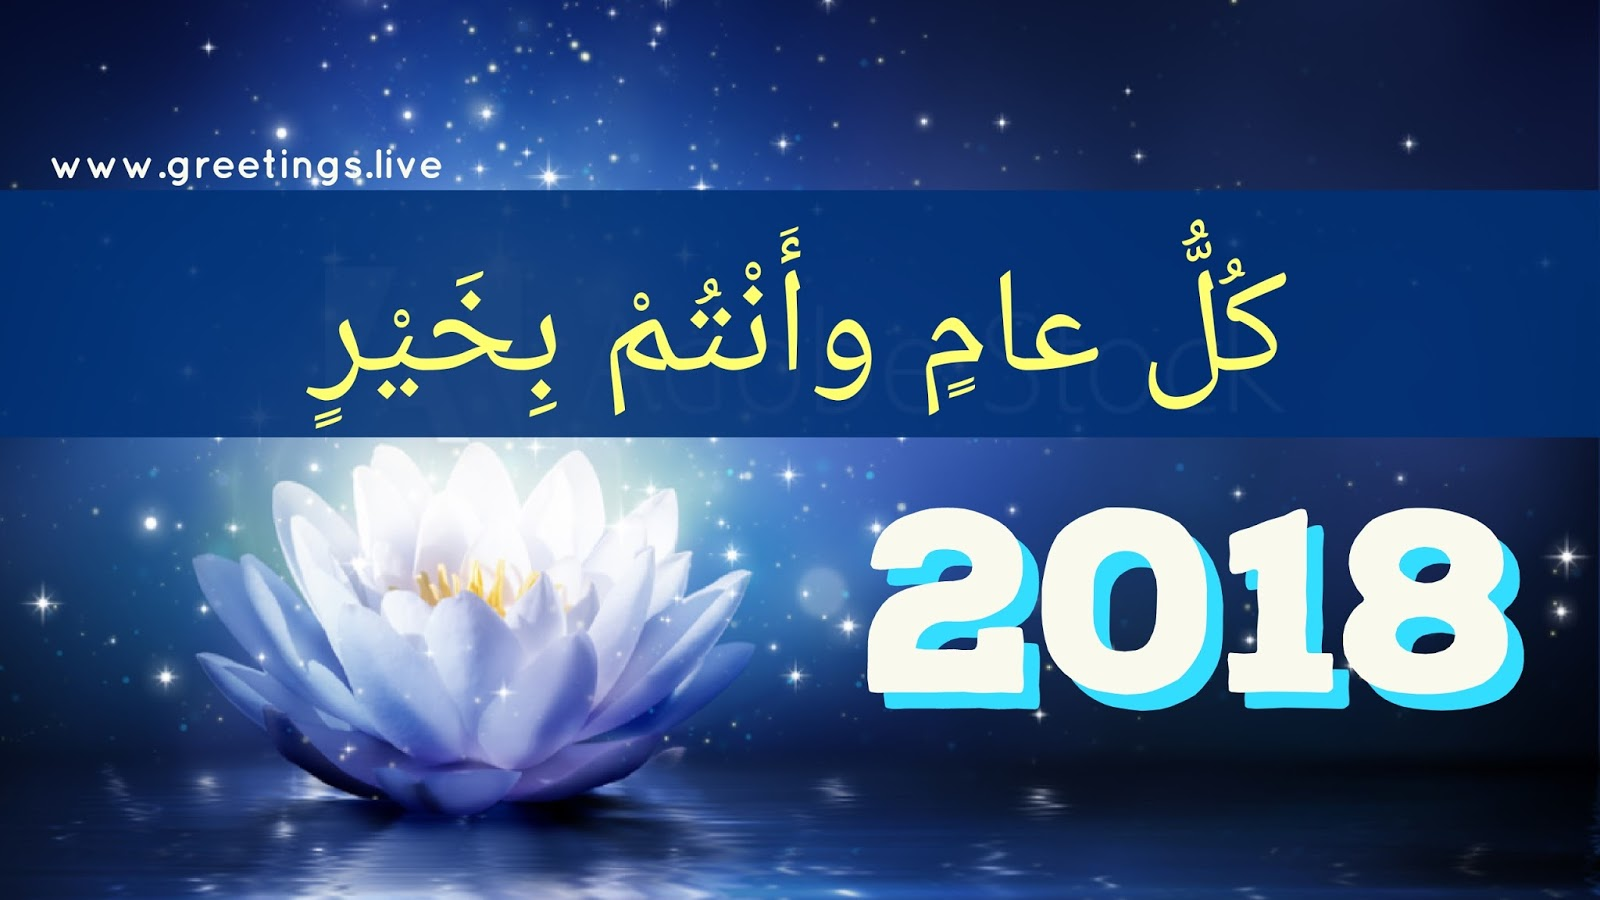 live happy new year greetings